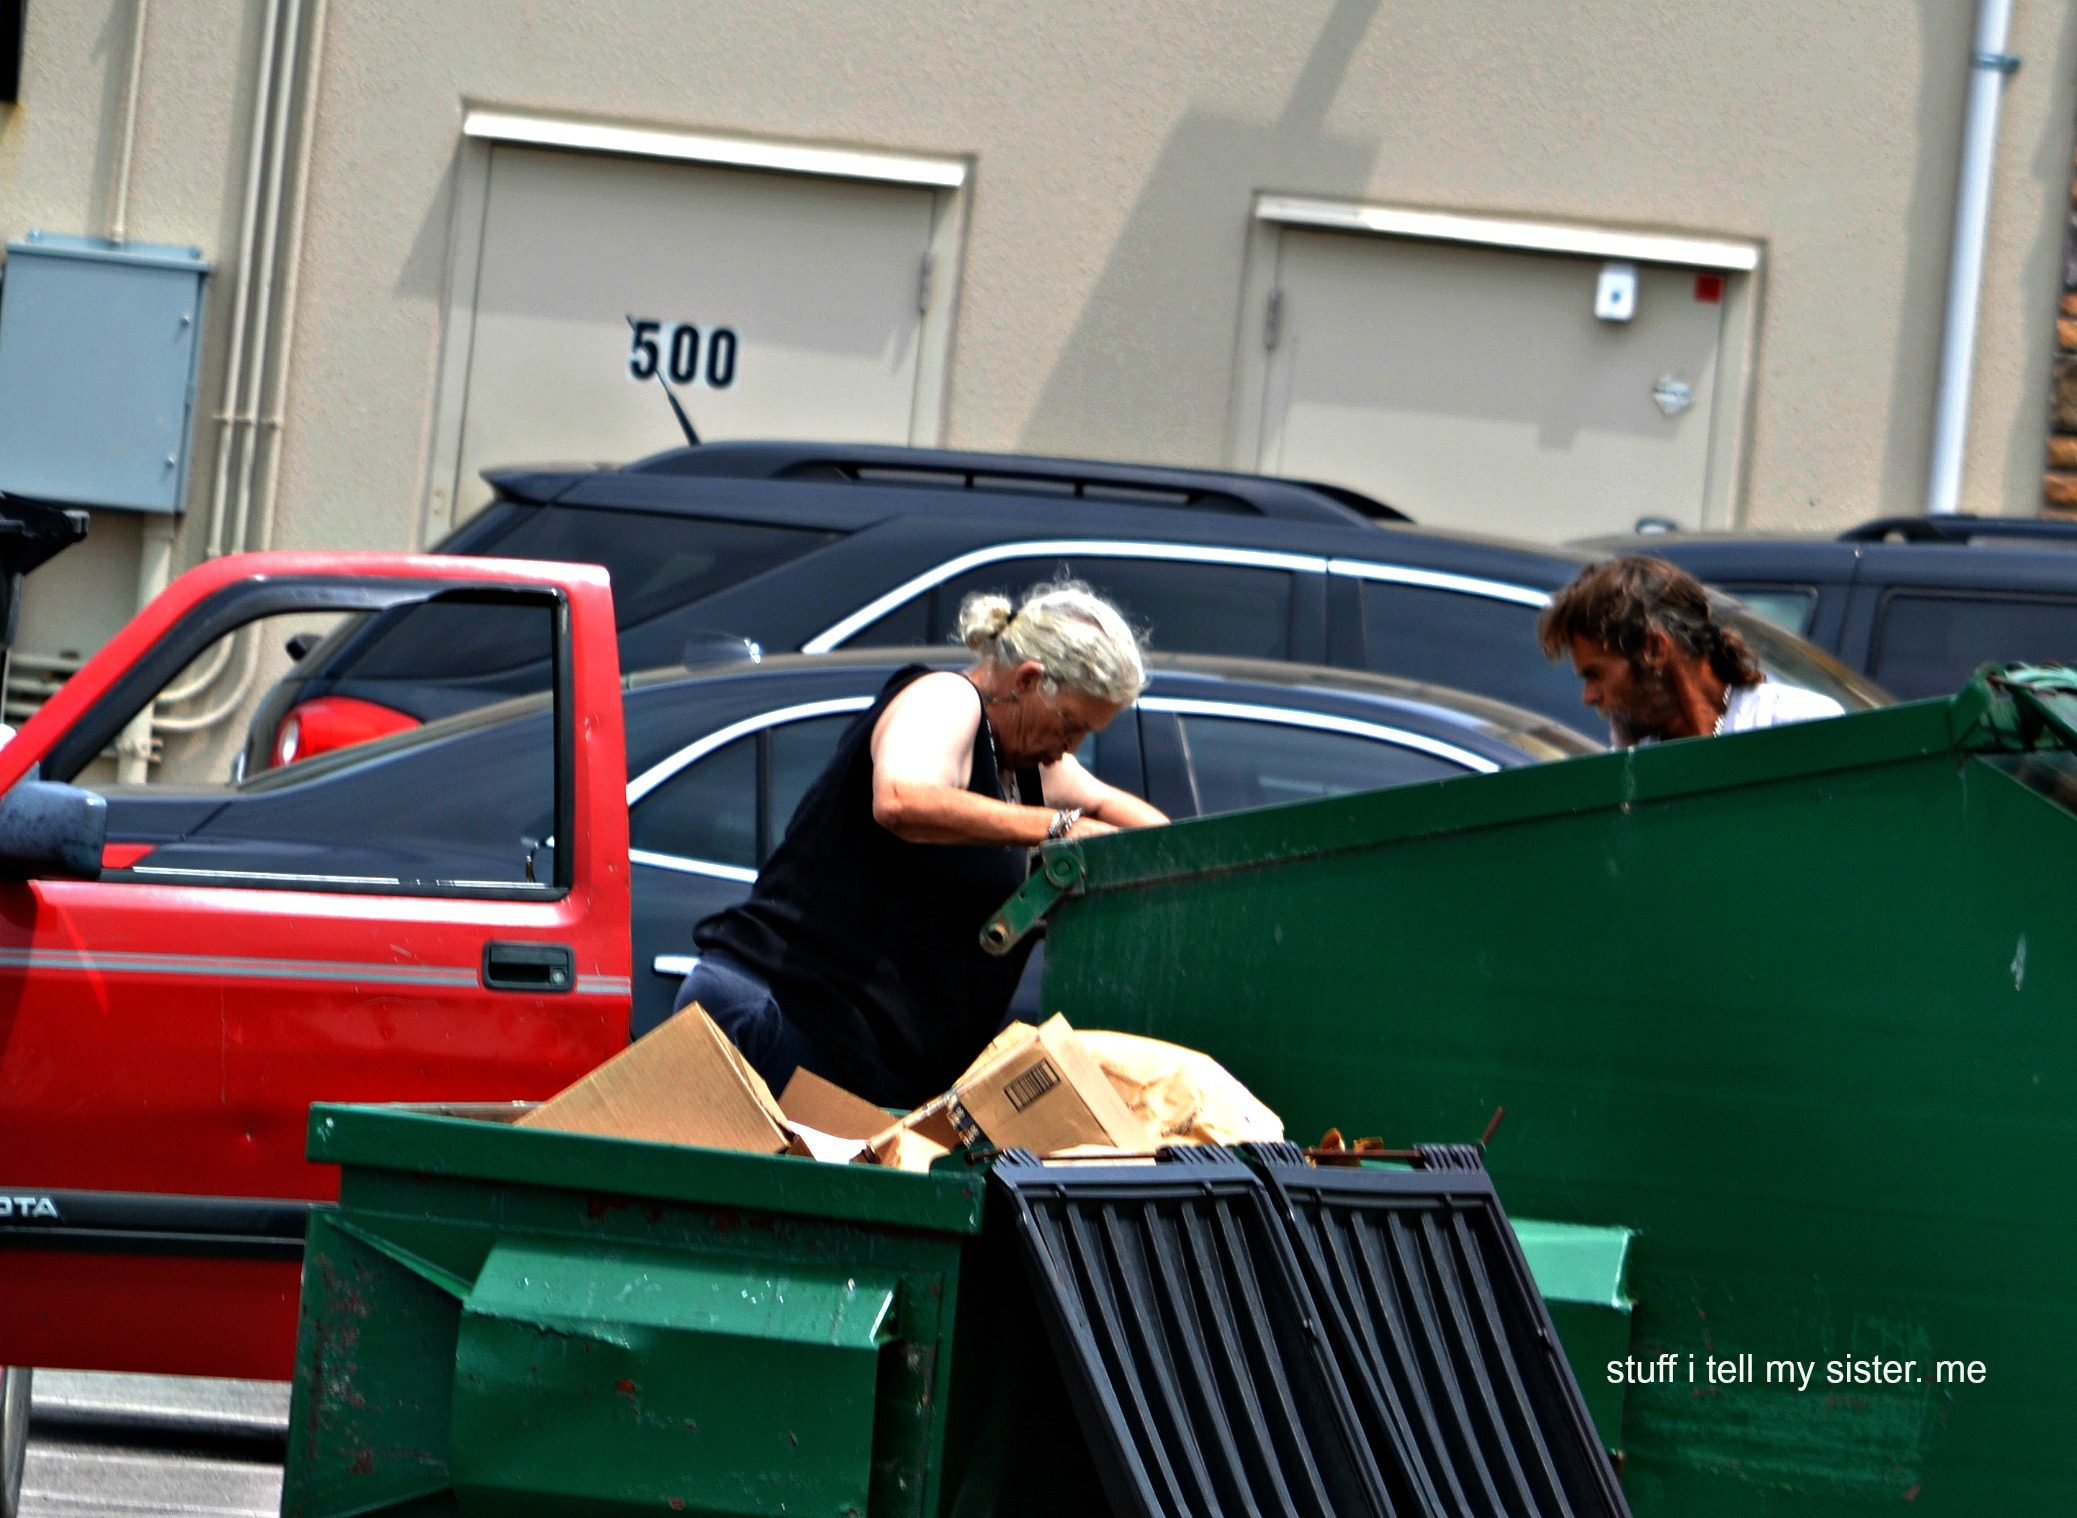 dumpster diving Dumpster denny is the place to go for dumpster rental service for the construction , home improvement, landscaping and simple clean-out projects that generates.